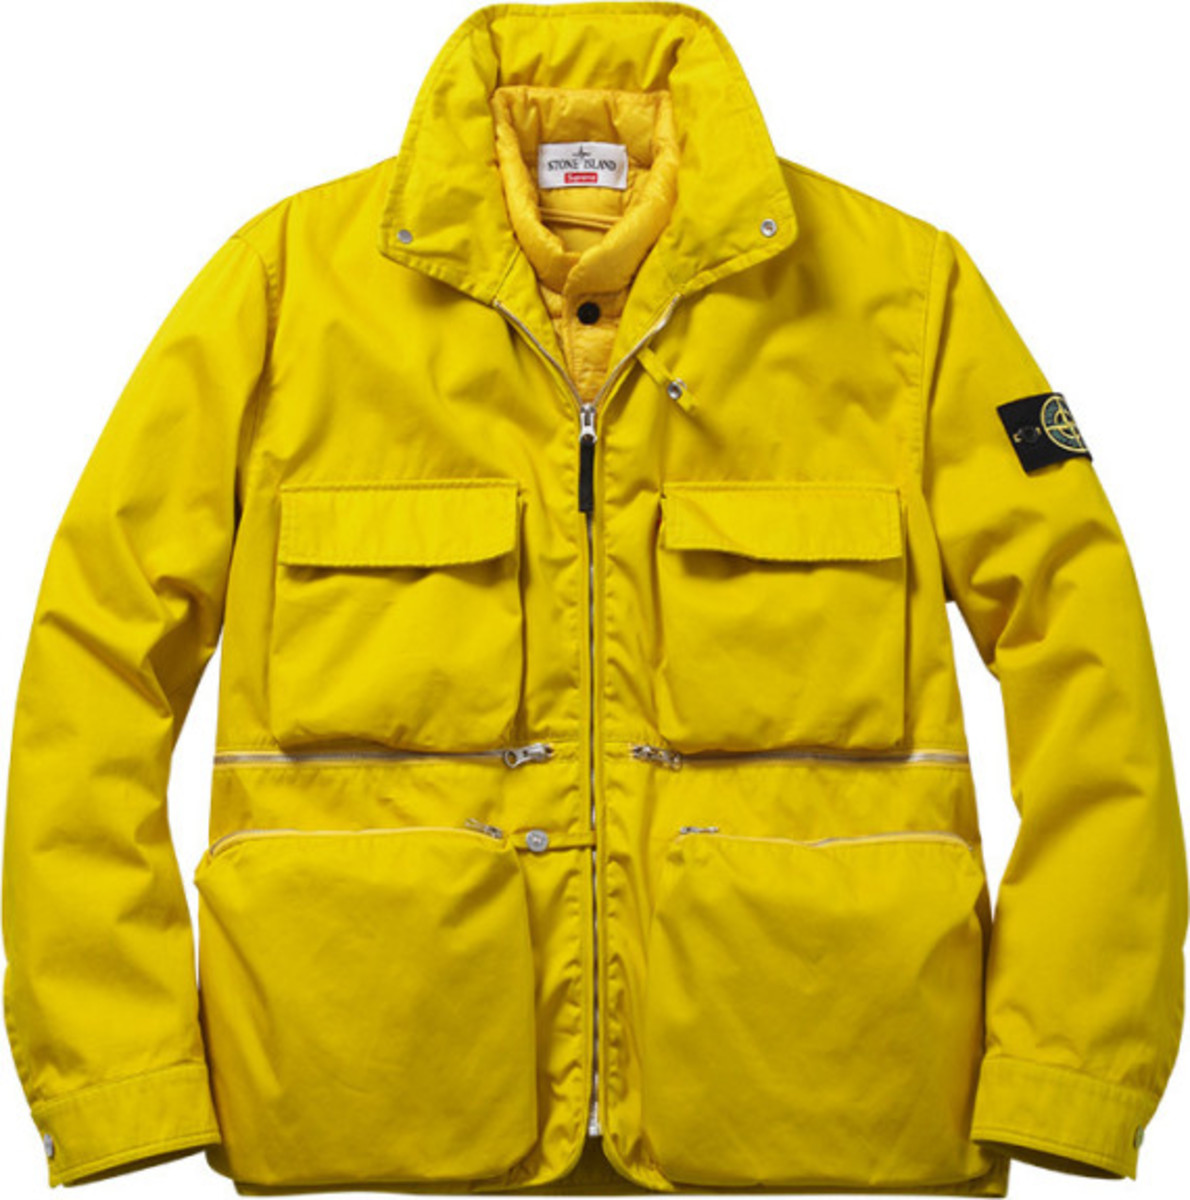 Supreme x Stone Island – Fall/Winter 2014 Collection | Available Now - 8